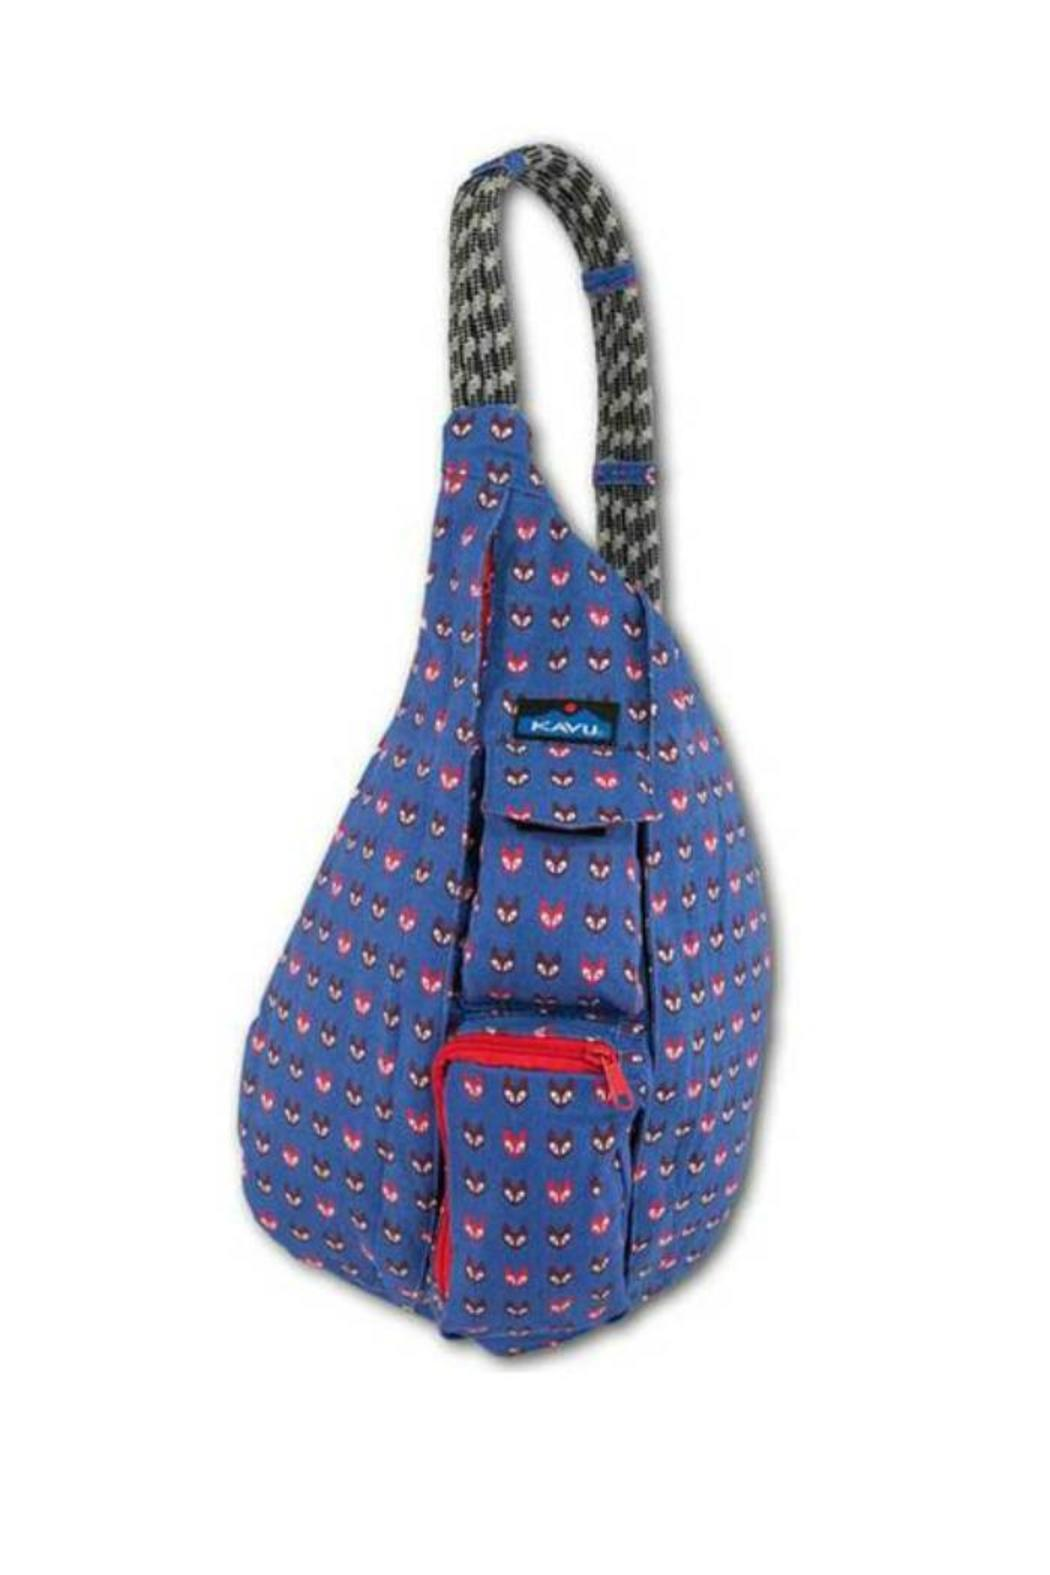 Kavu Rope Bag From Tennessee By Lori S Family Footwear